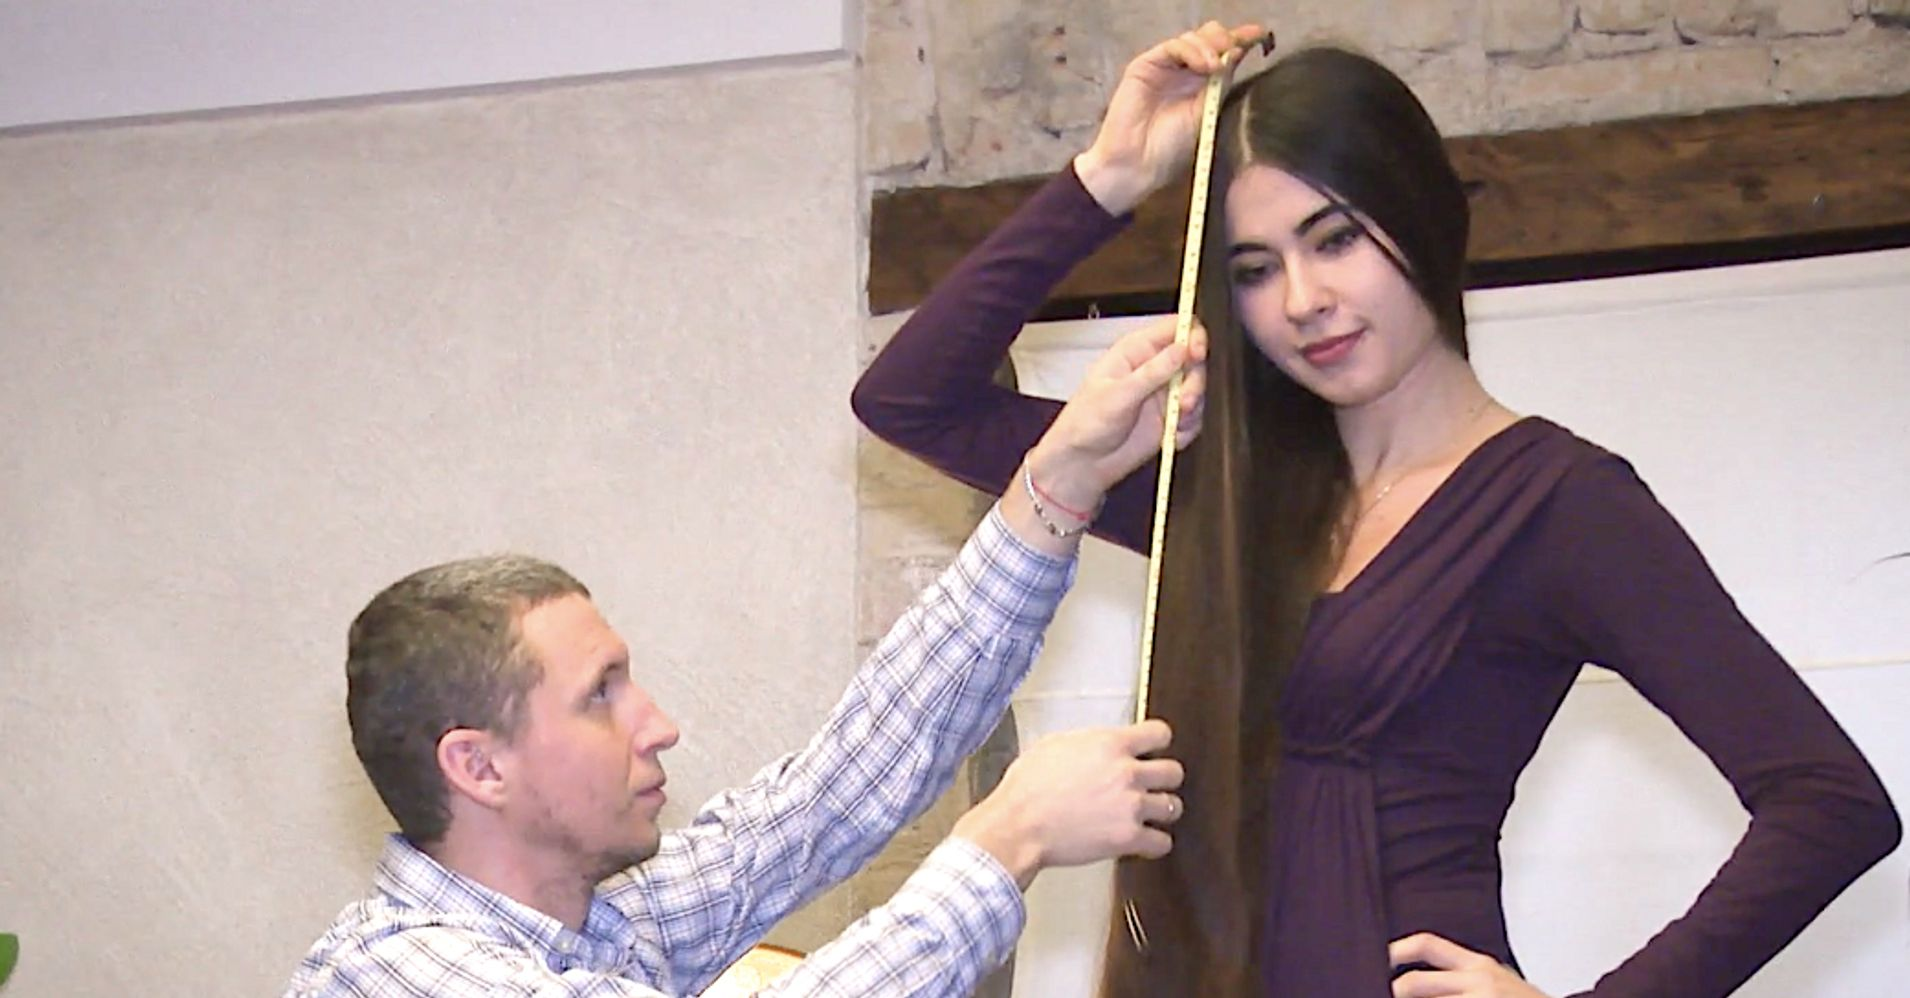 This Real-Life Rapunzel From Latvia Has Hair 90 Inches Long